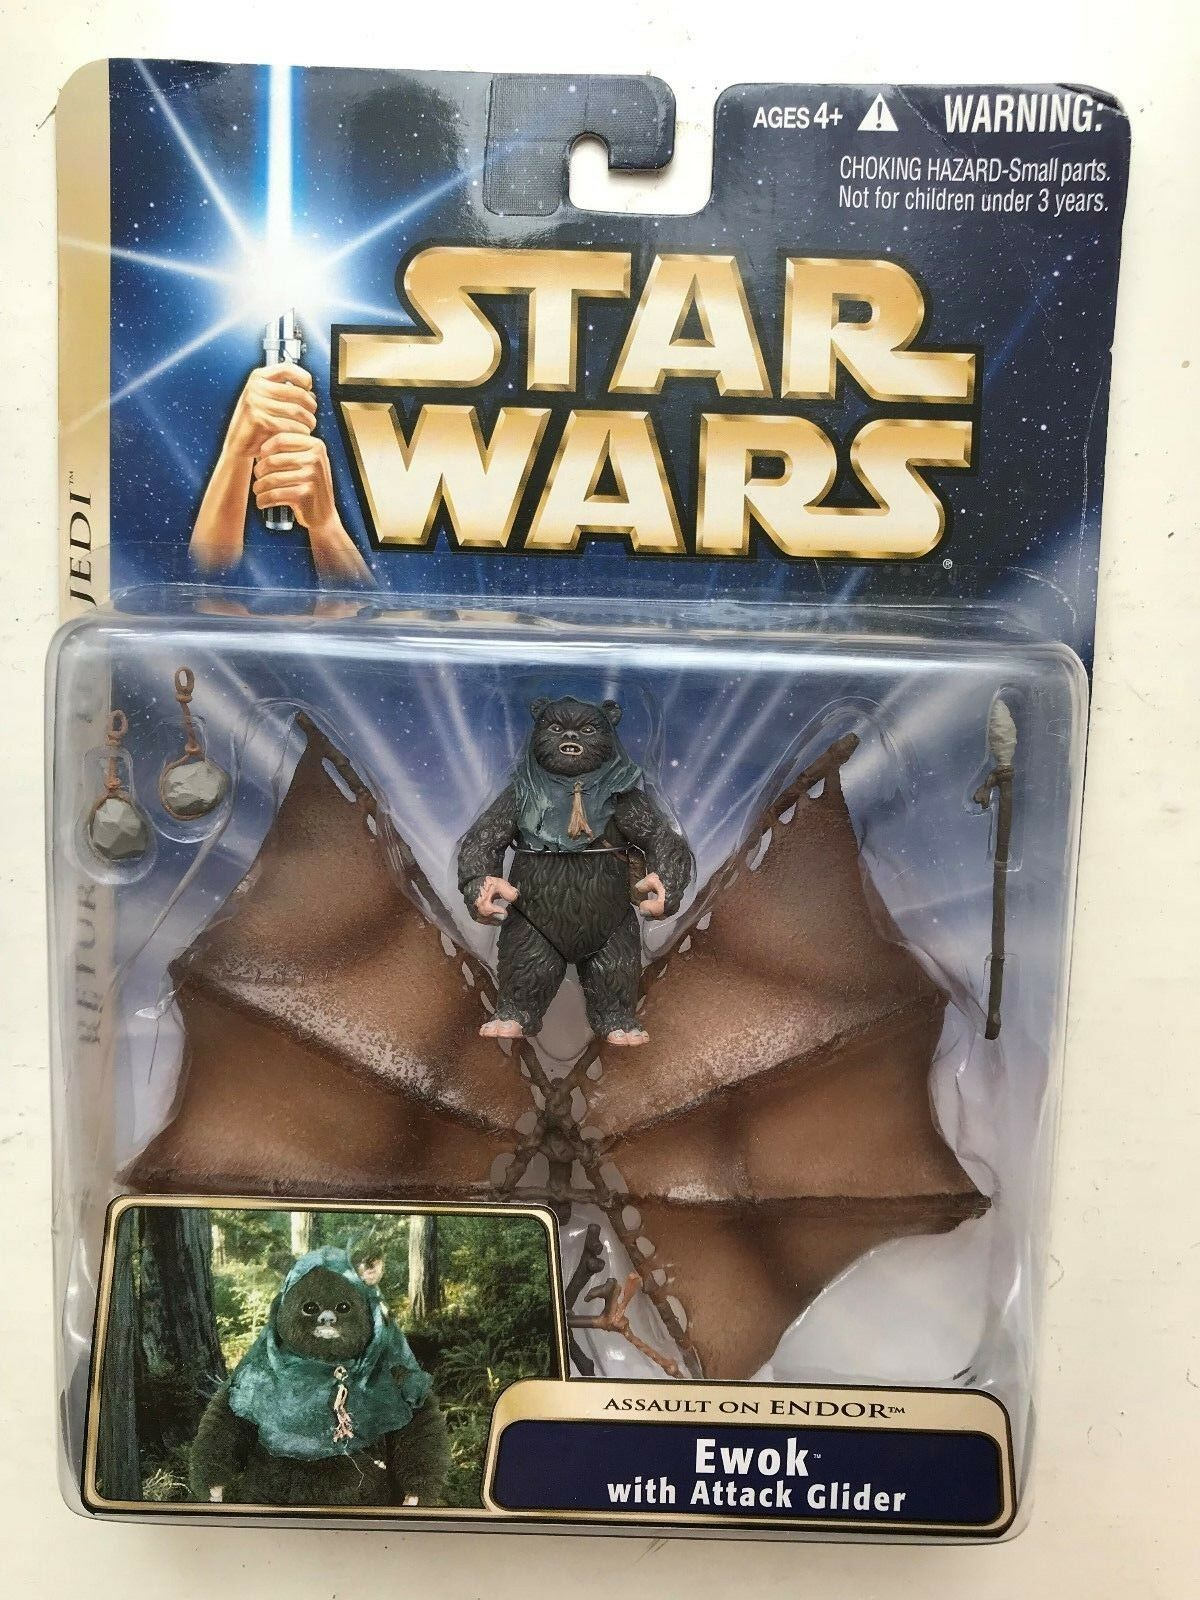 STAR WARS RETURN OF THE JEDI SERIES EWOK WITH ATTACK GLIDER FIGURE HASBRO